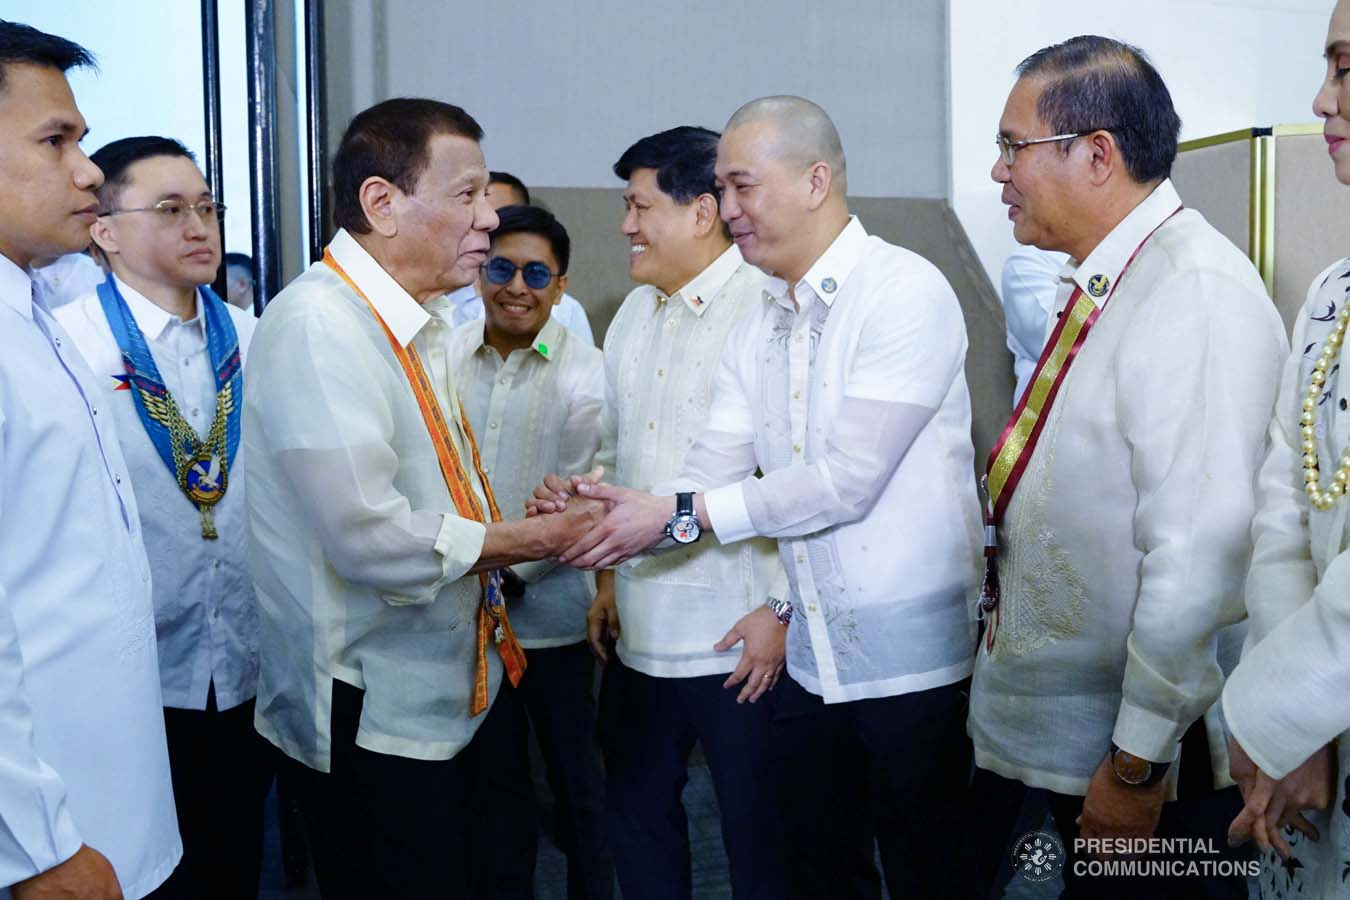 President Rodrigo Roa Duterte shares a light moment with some of the guests during the thanksgiving gathering with The Fraternal Order of Eagles (TFOE) at the SMX Convention Center in Davao City on January 17, 2020. JOEY DALUMPINES/PRESIDENTIAL PHOTO